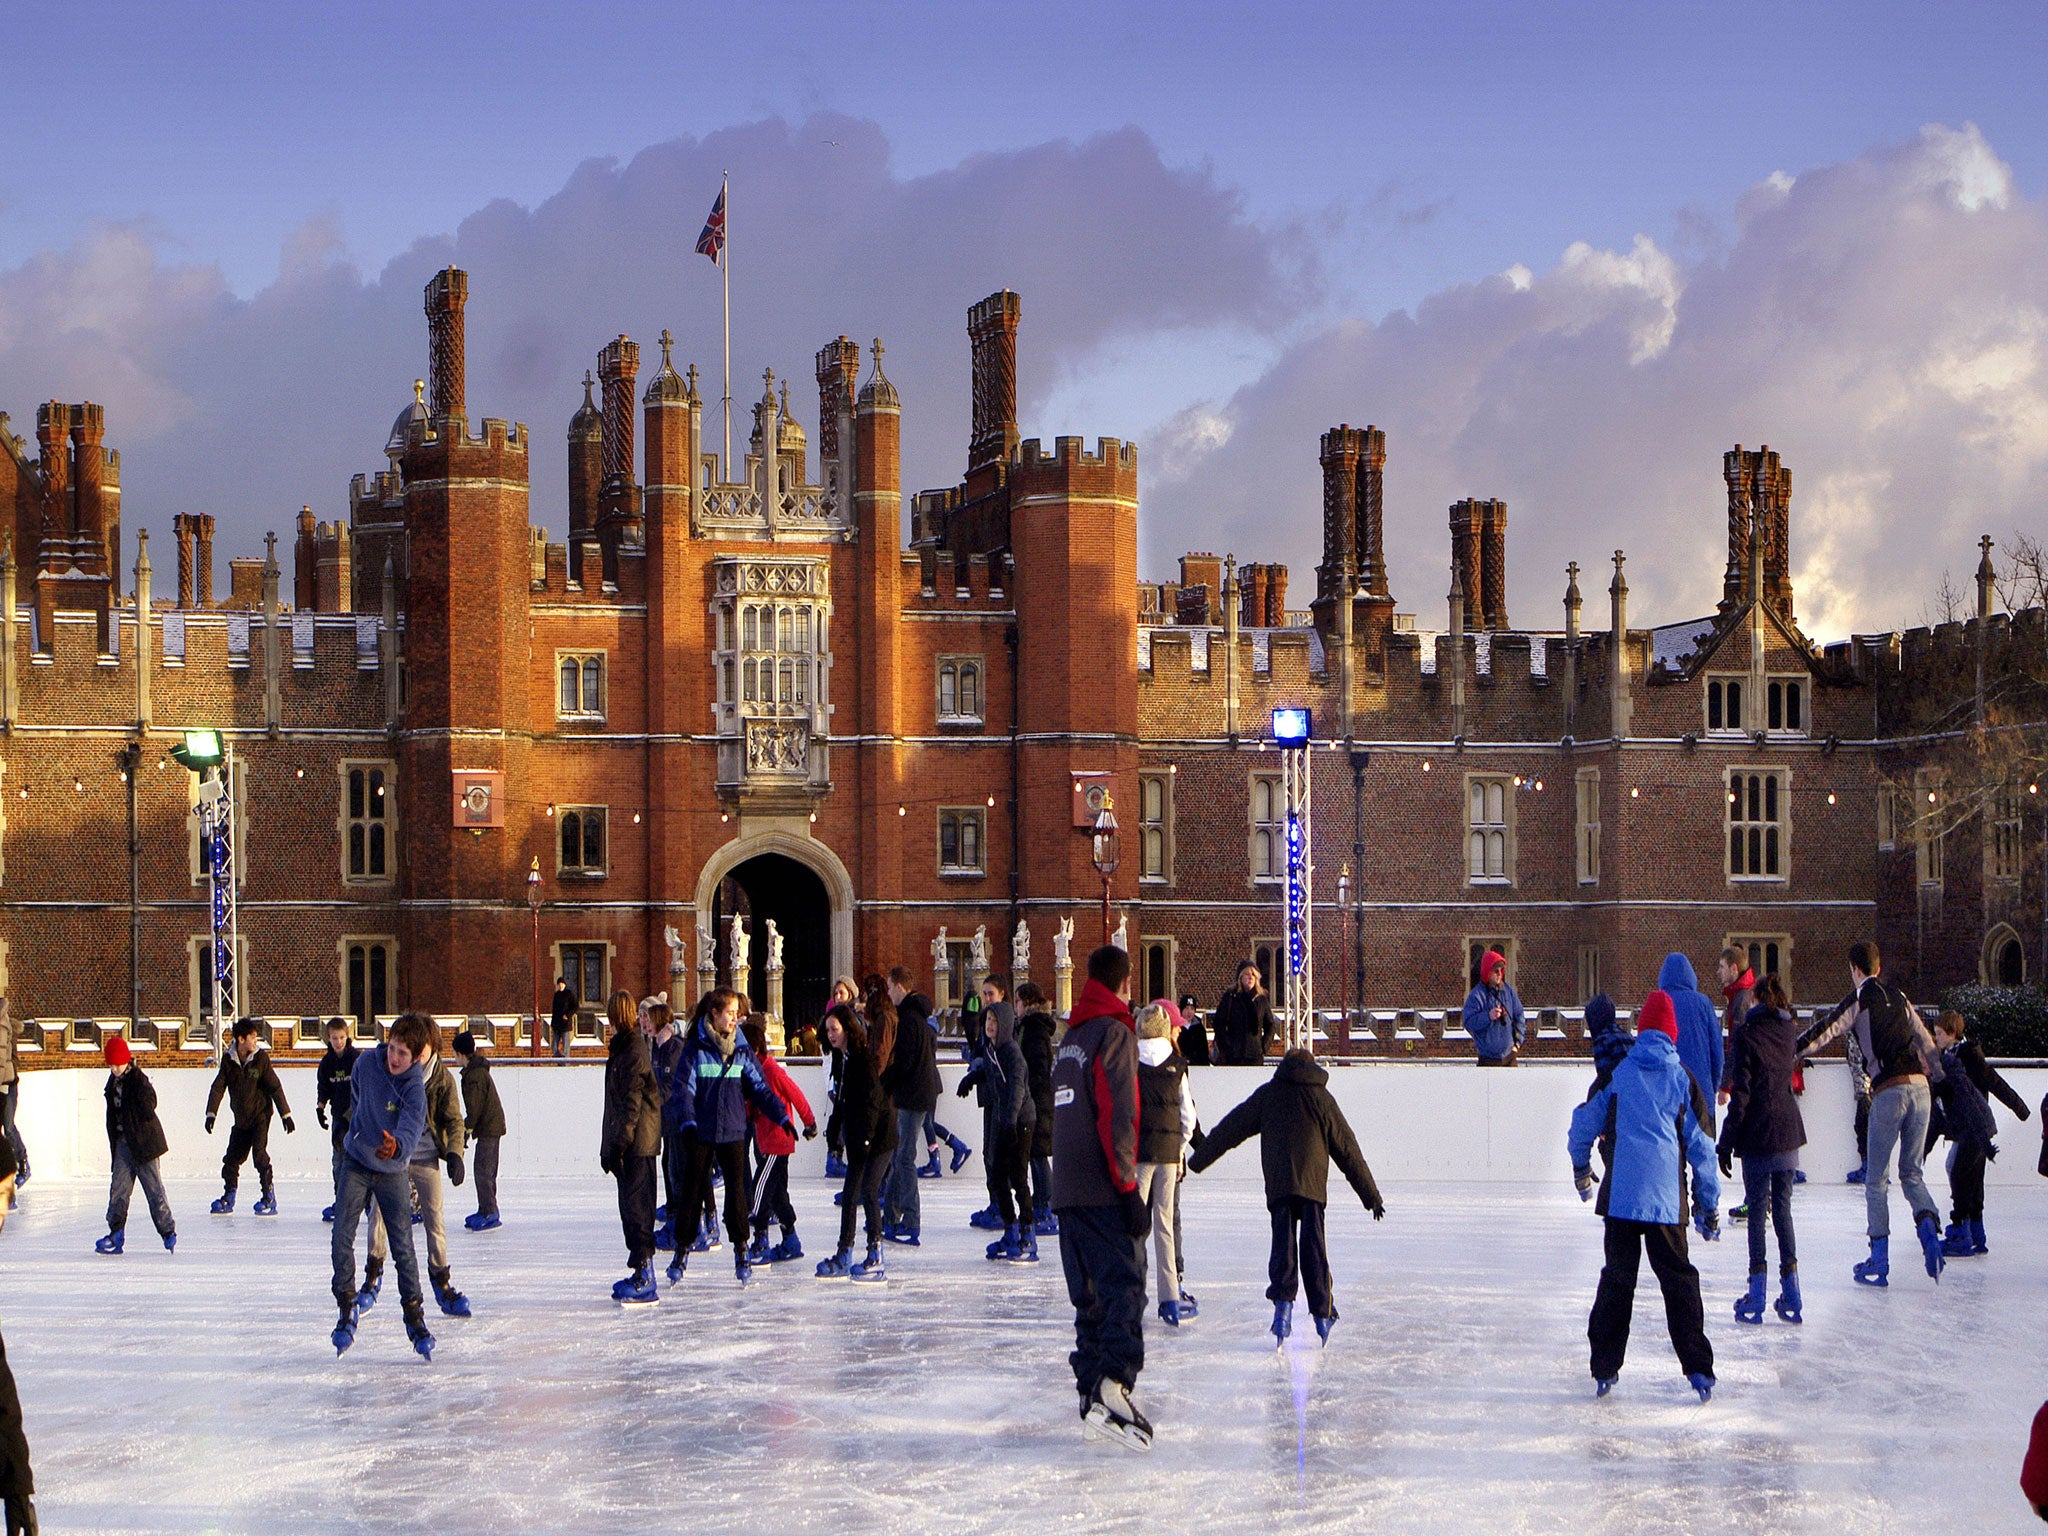 Christmas Ice Skating.The 10 Best Christmas Ice Rinks The Independent